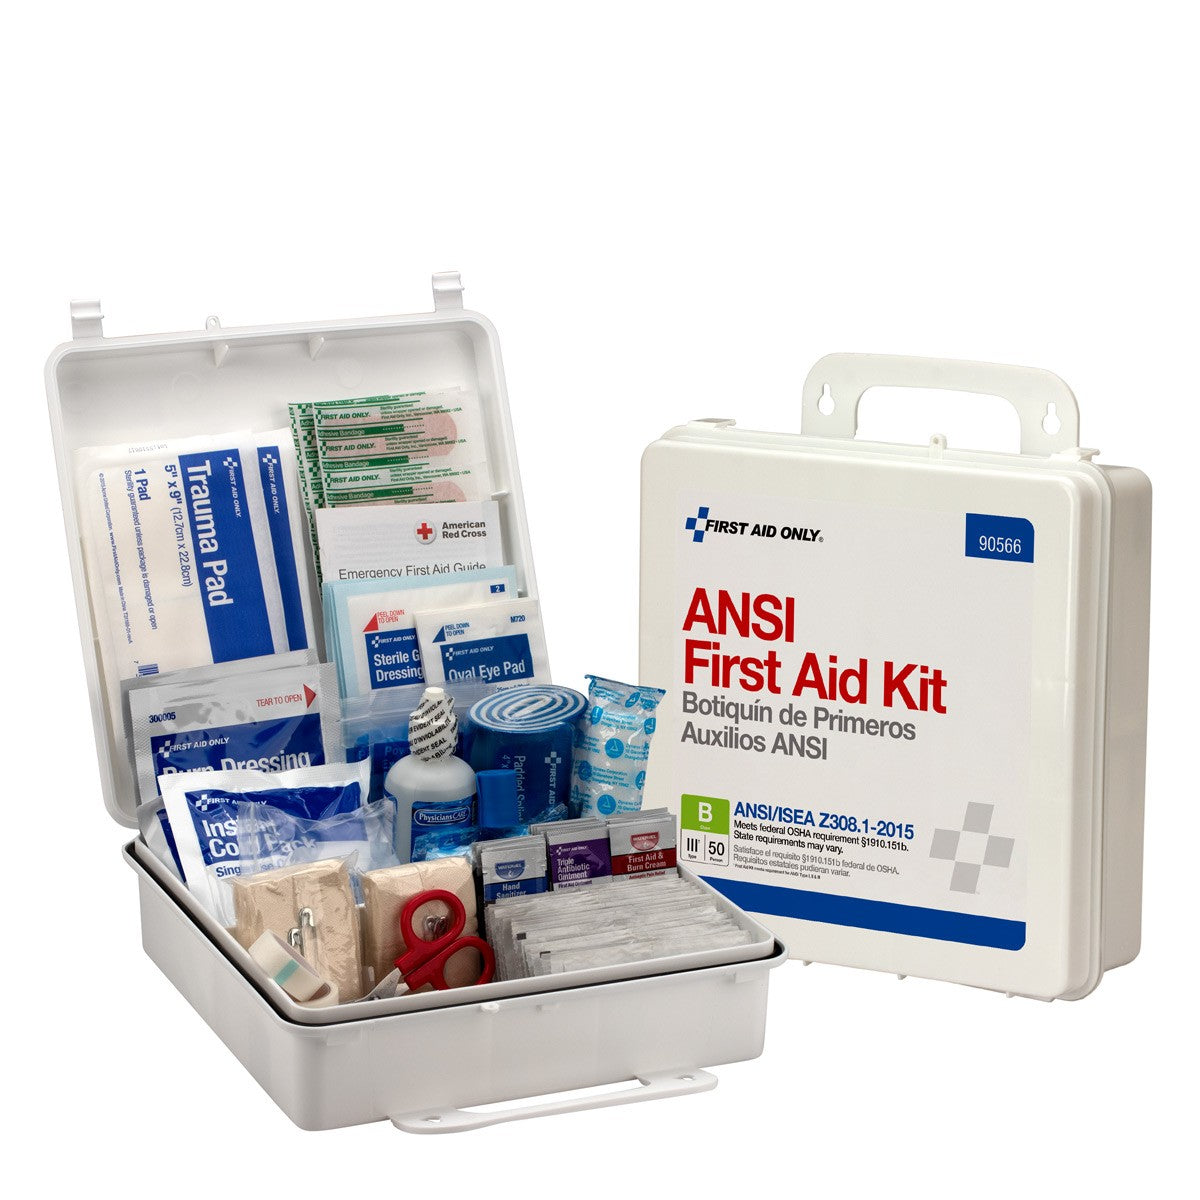 50 Person Bulk First Aid Kit, ANSI B, Type III, Weatherproof Plastic Case - BS-FAK-90566-1-FM